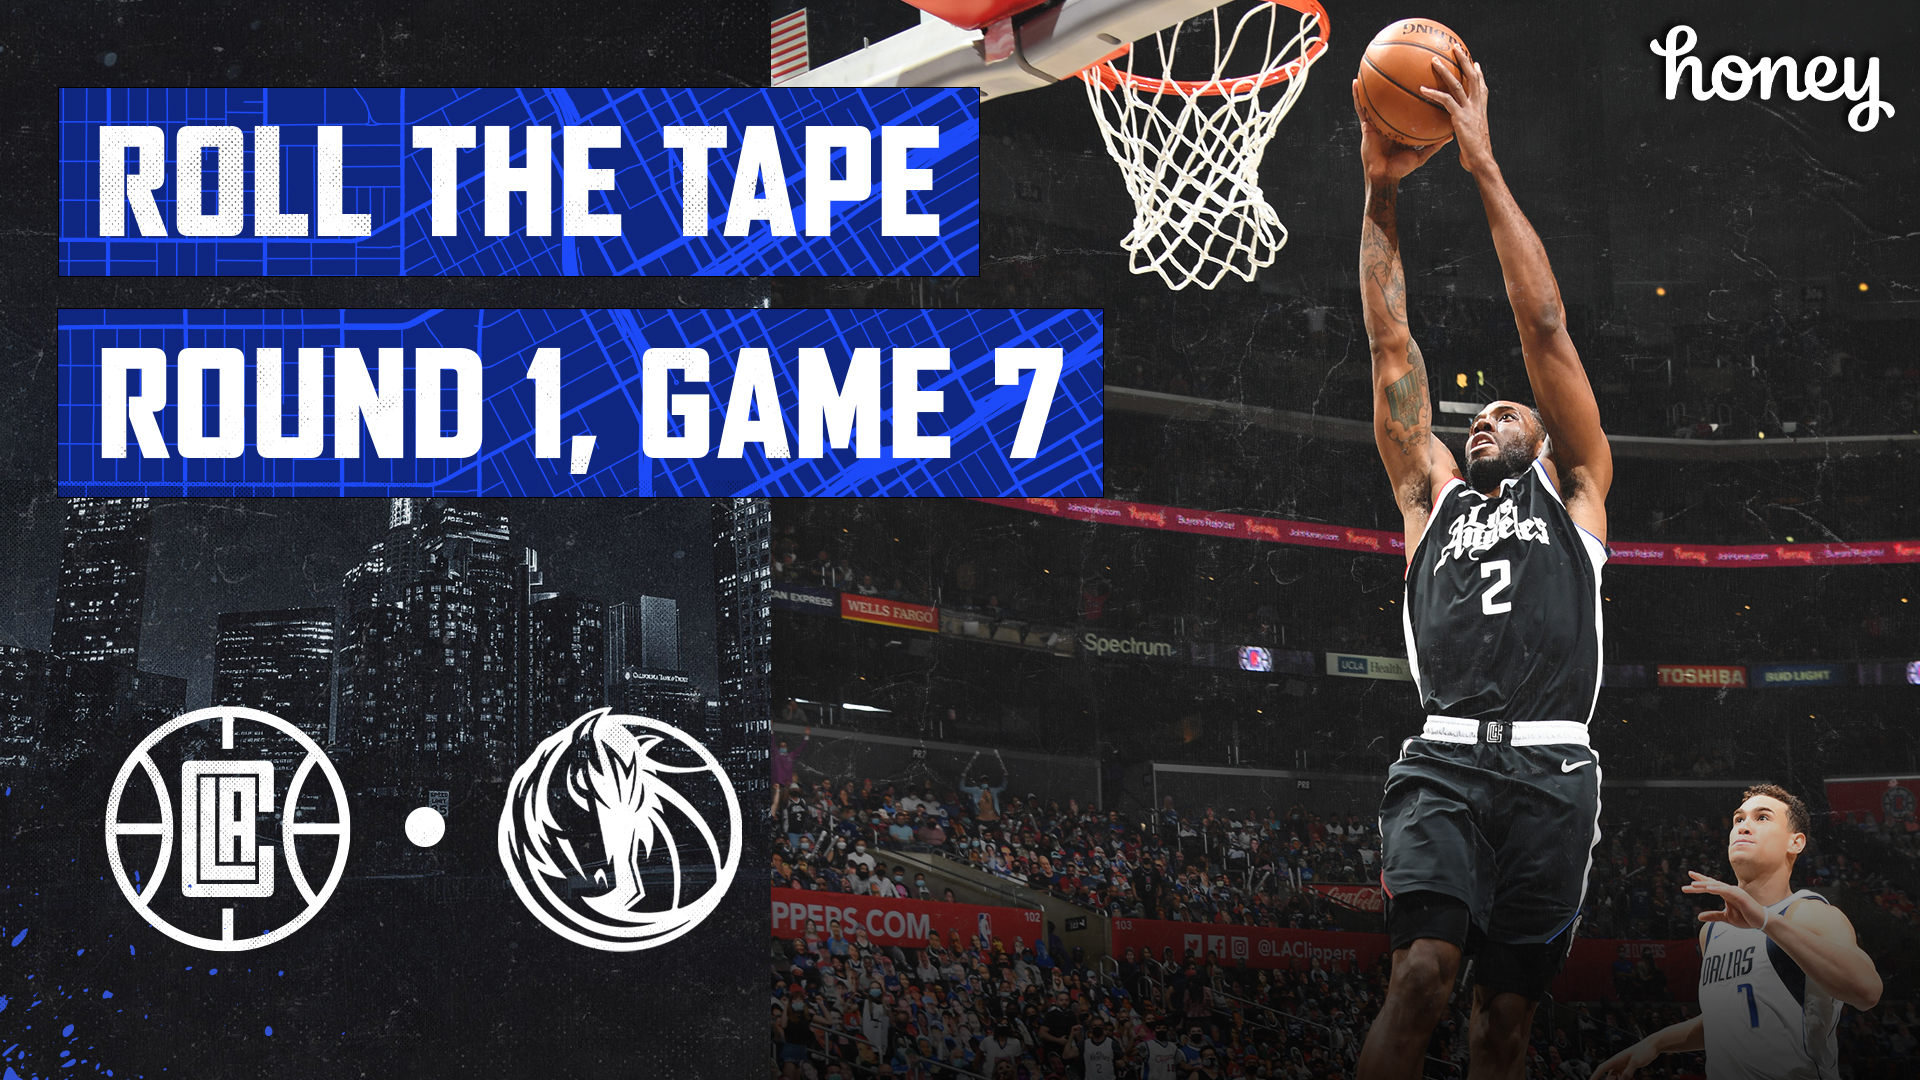 Roll The Tape | Clippers Closeout Mavericks in Game 7 (6.6.21)